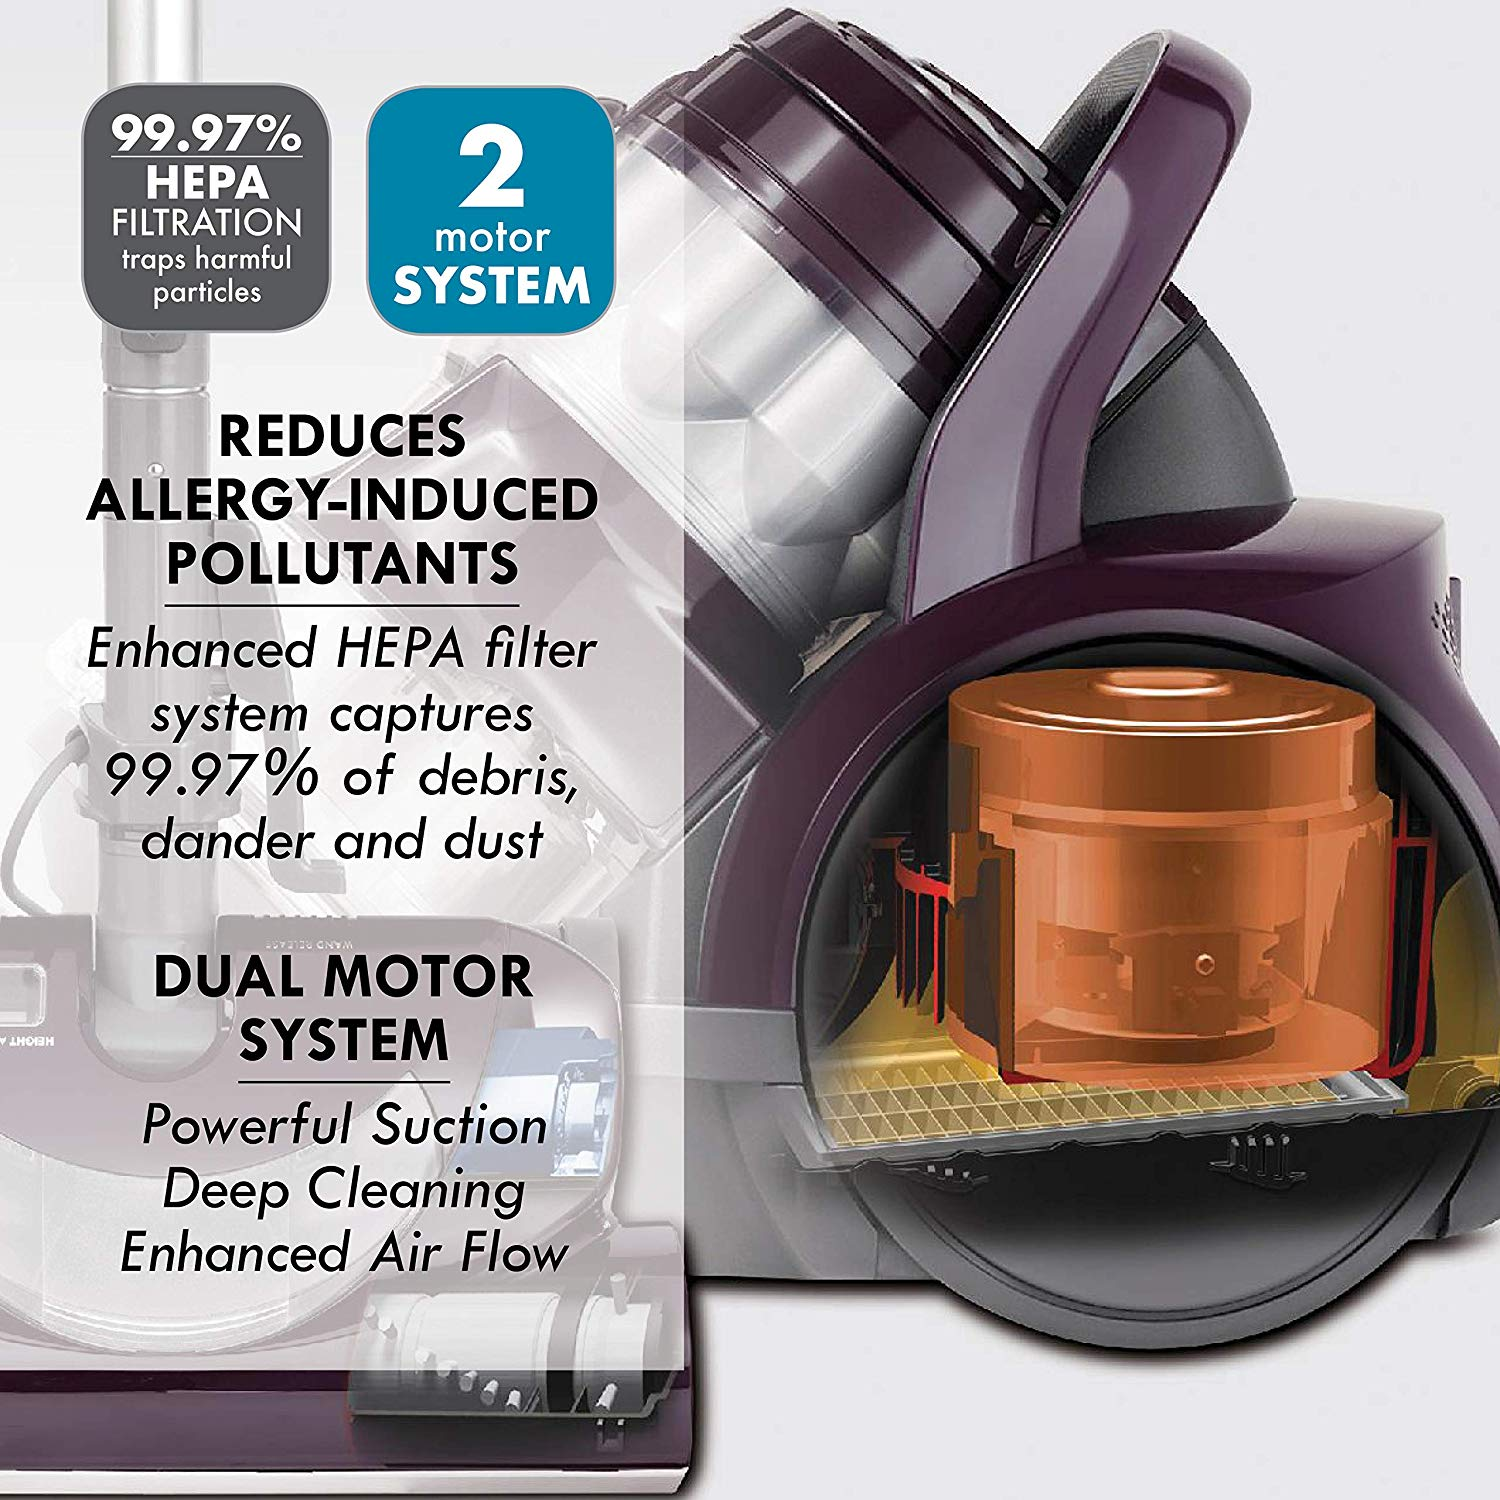 sample of the kenmore vacuum cleaner showing it's various features and design